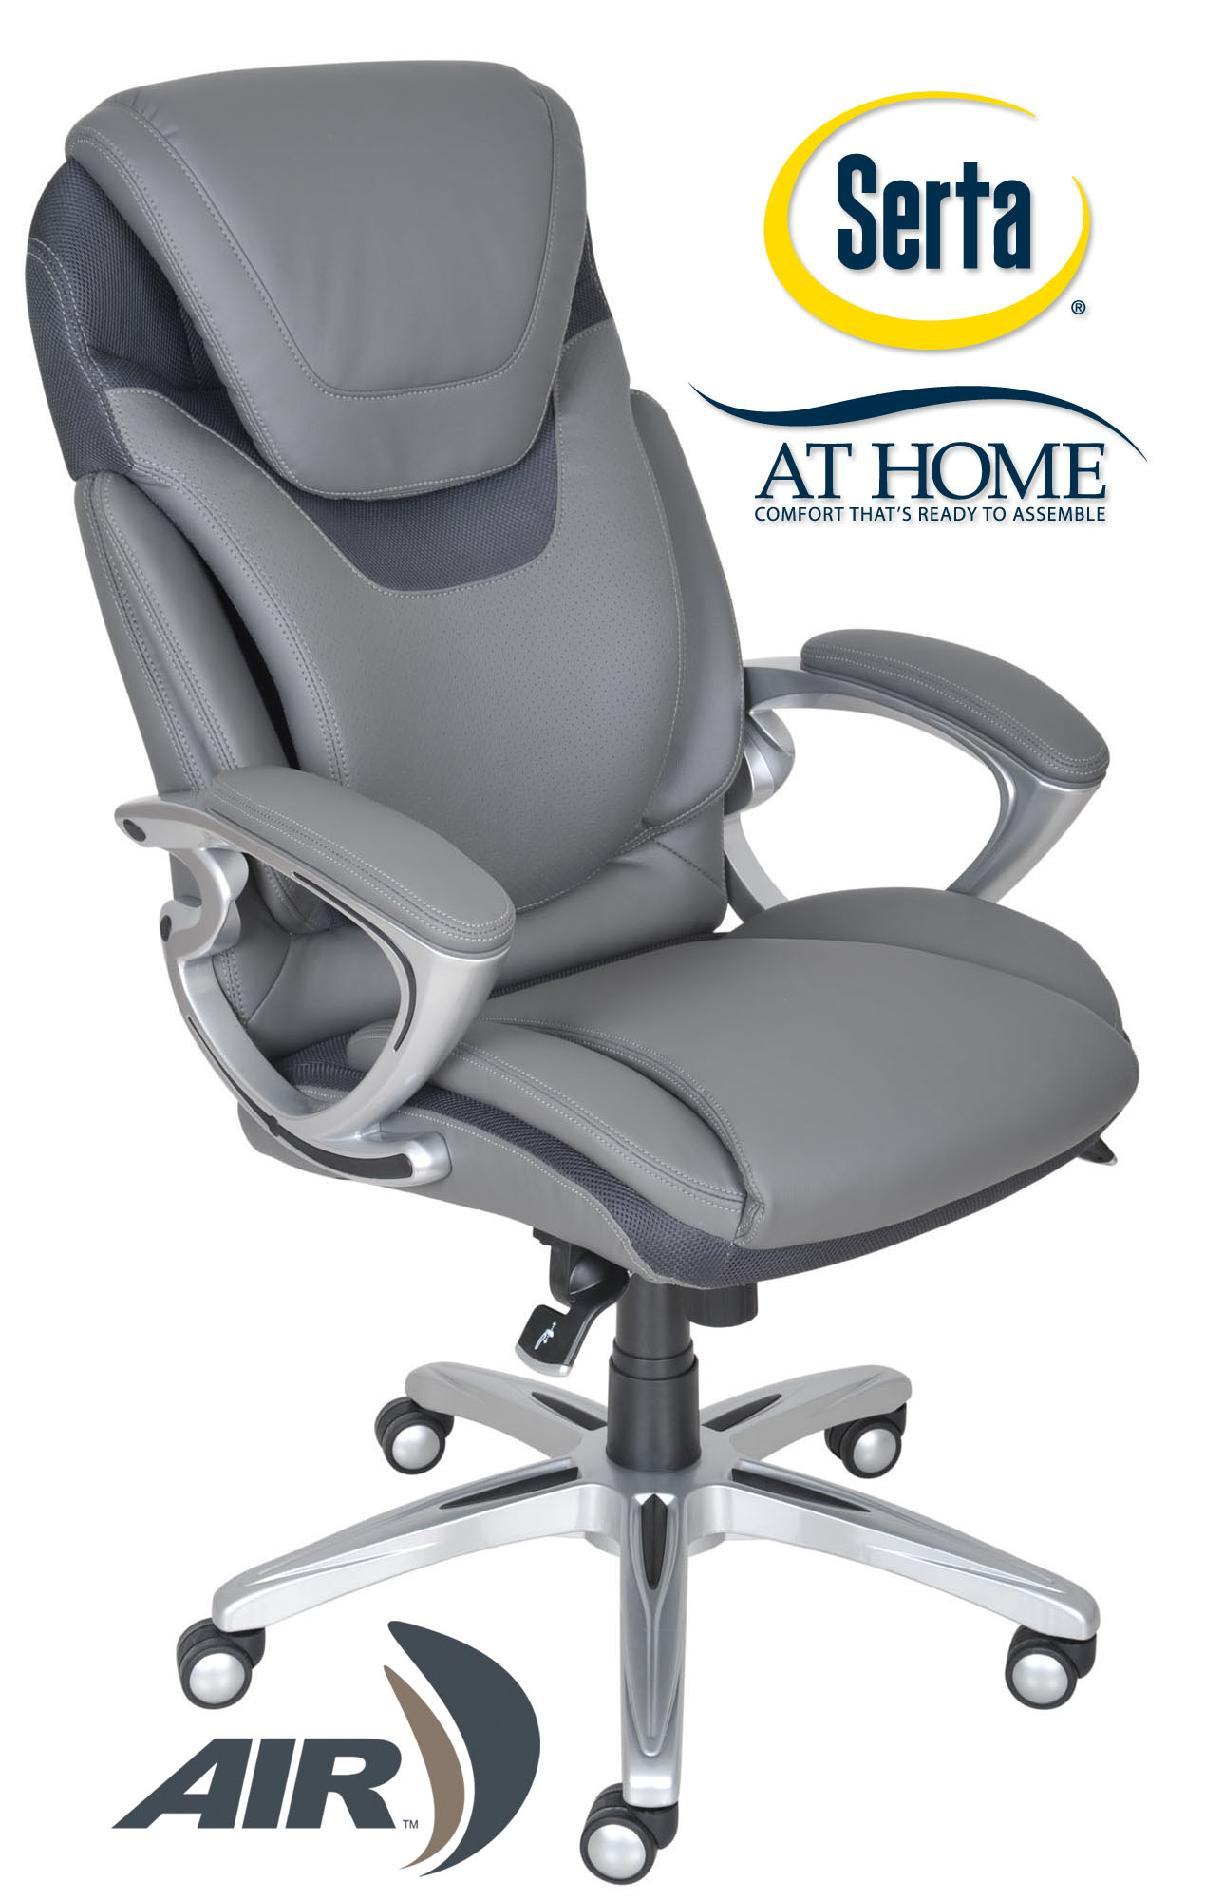 serta bonded leather executive chair oversized ottoman air health and wellness office eco